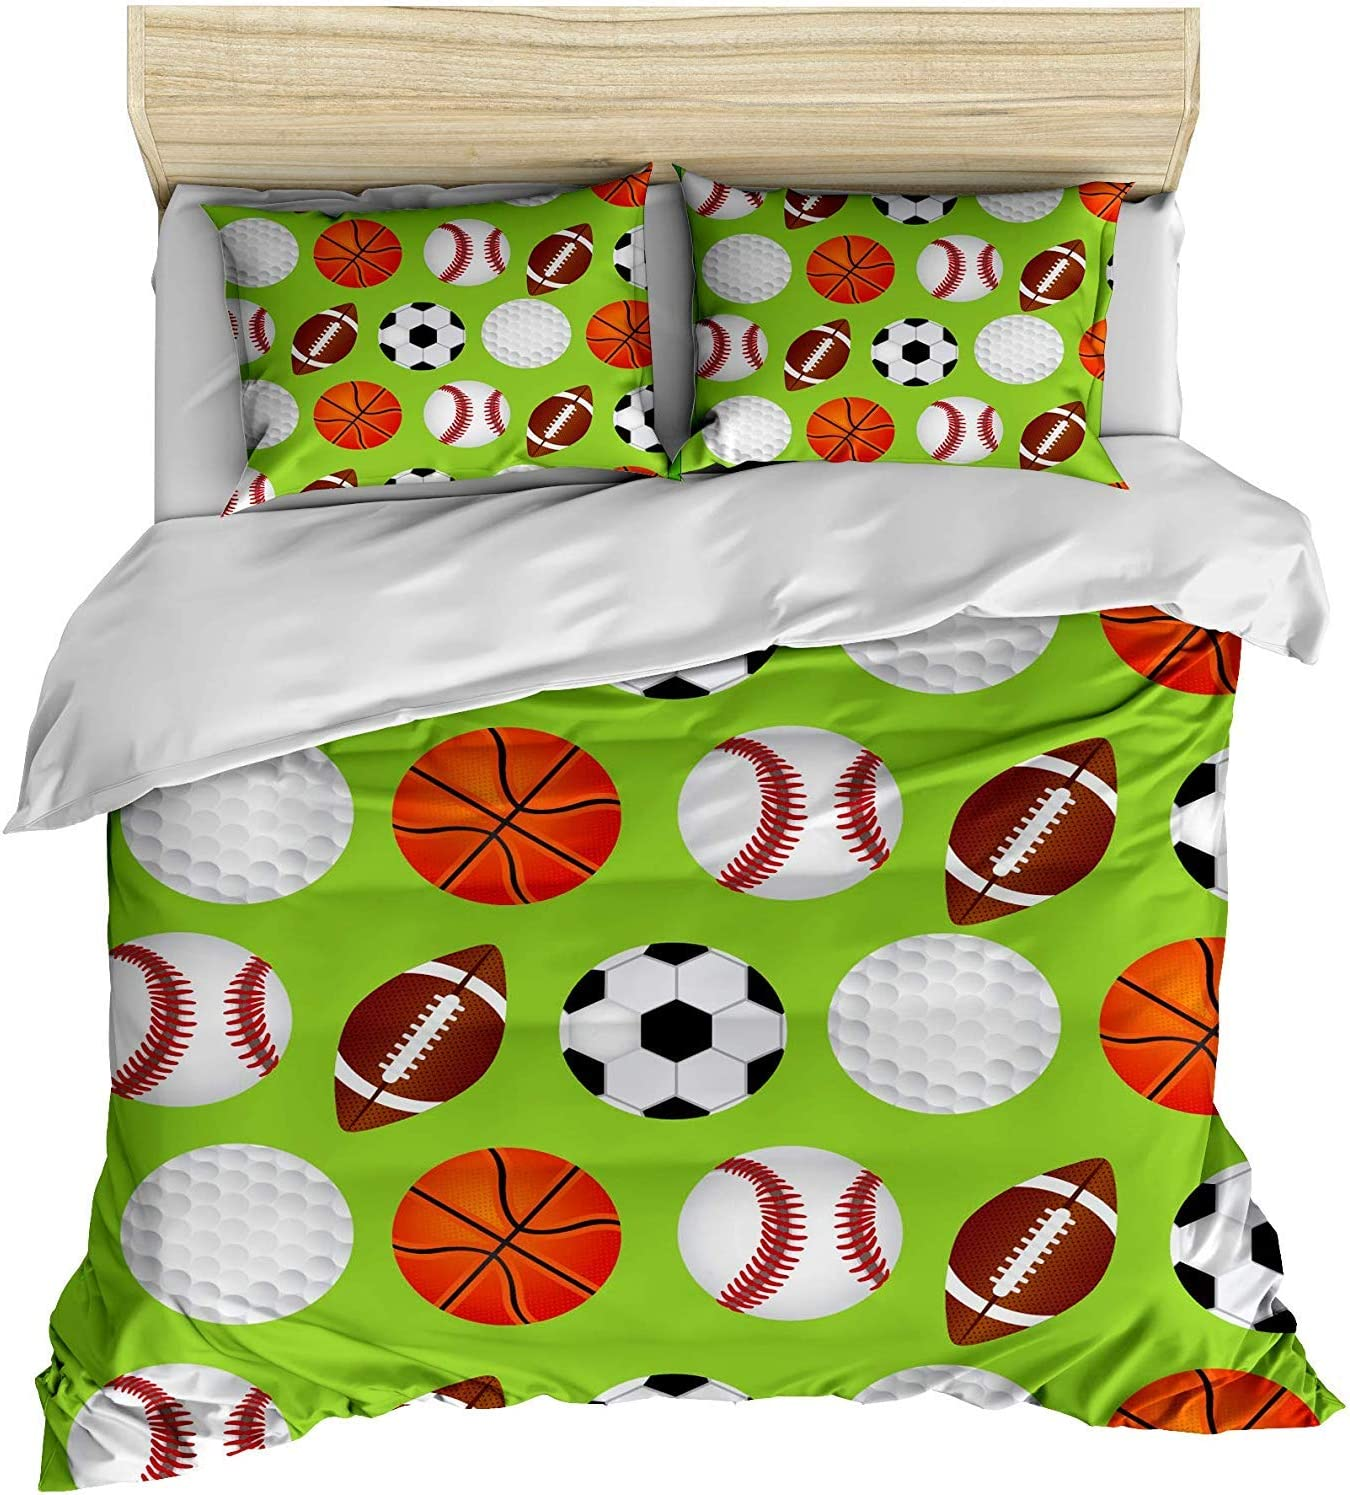 """Zimmer Excellent Sports Football Basketball Cotton Microfiber 3pc 90""""x79"""" Bedding Quilt Duvet Cover Sets 2 Pillow Cases Full Size"""